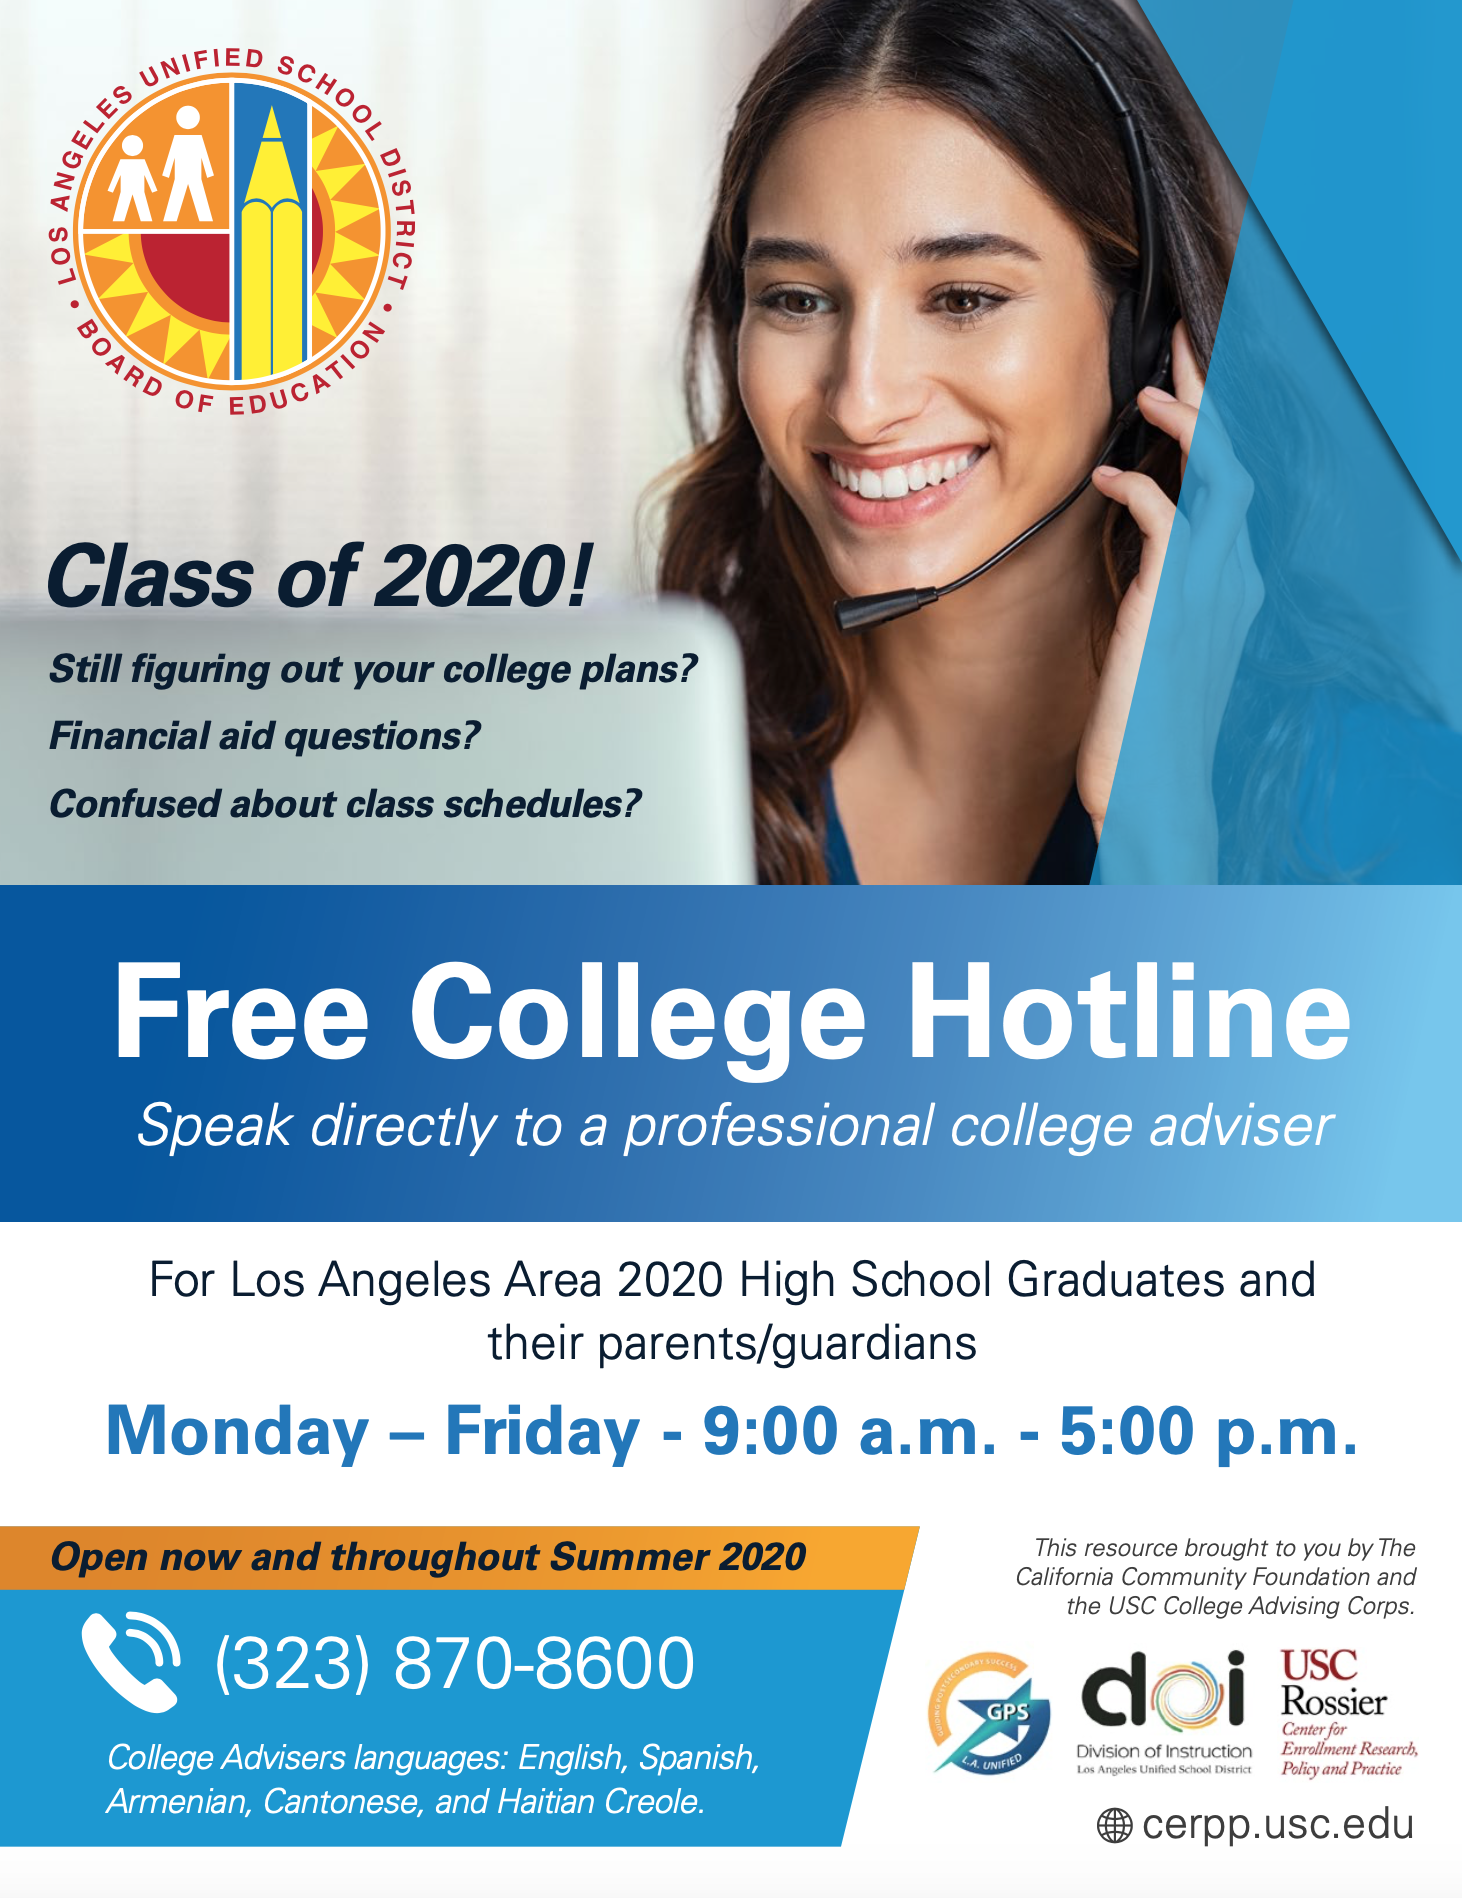 Free College Hotline